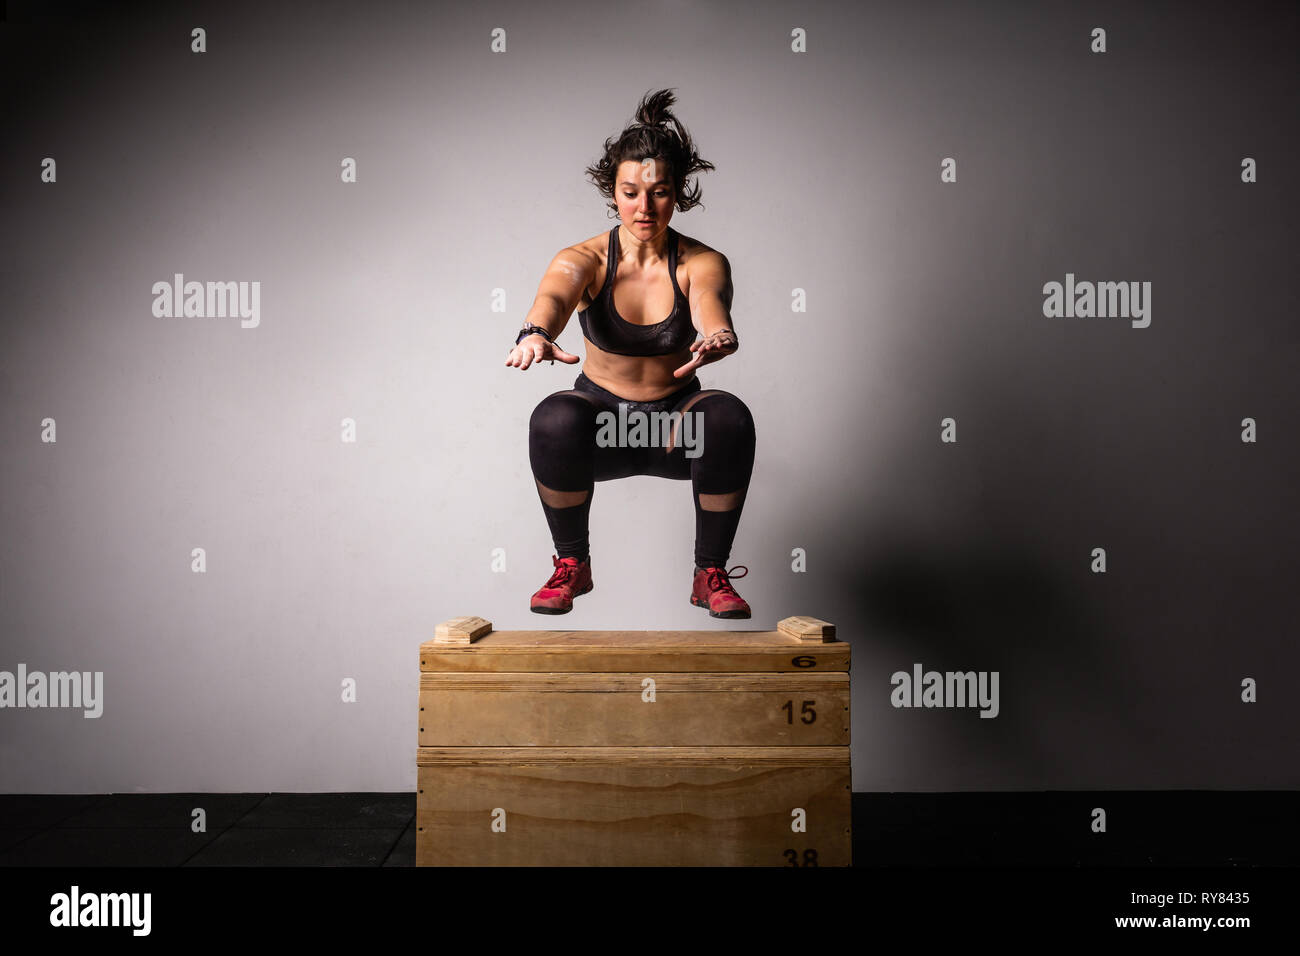 Athletic young lady in sportswear with reached out hands jumping on wooden box in gym on grey background - Stock Image